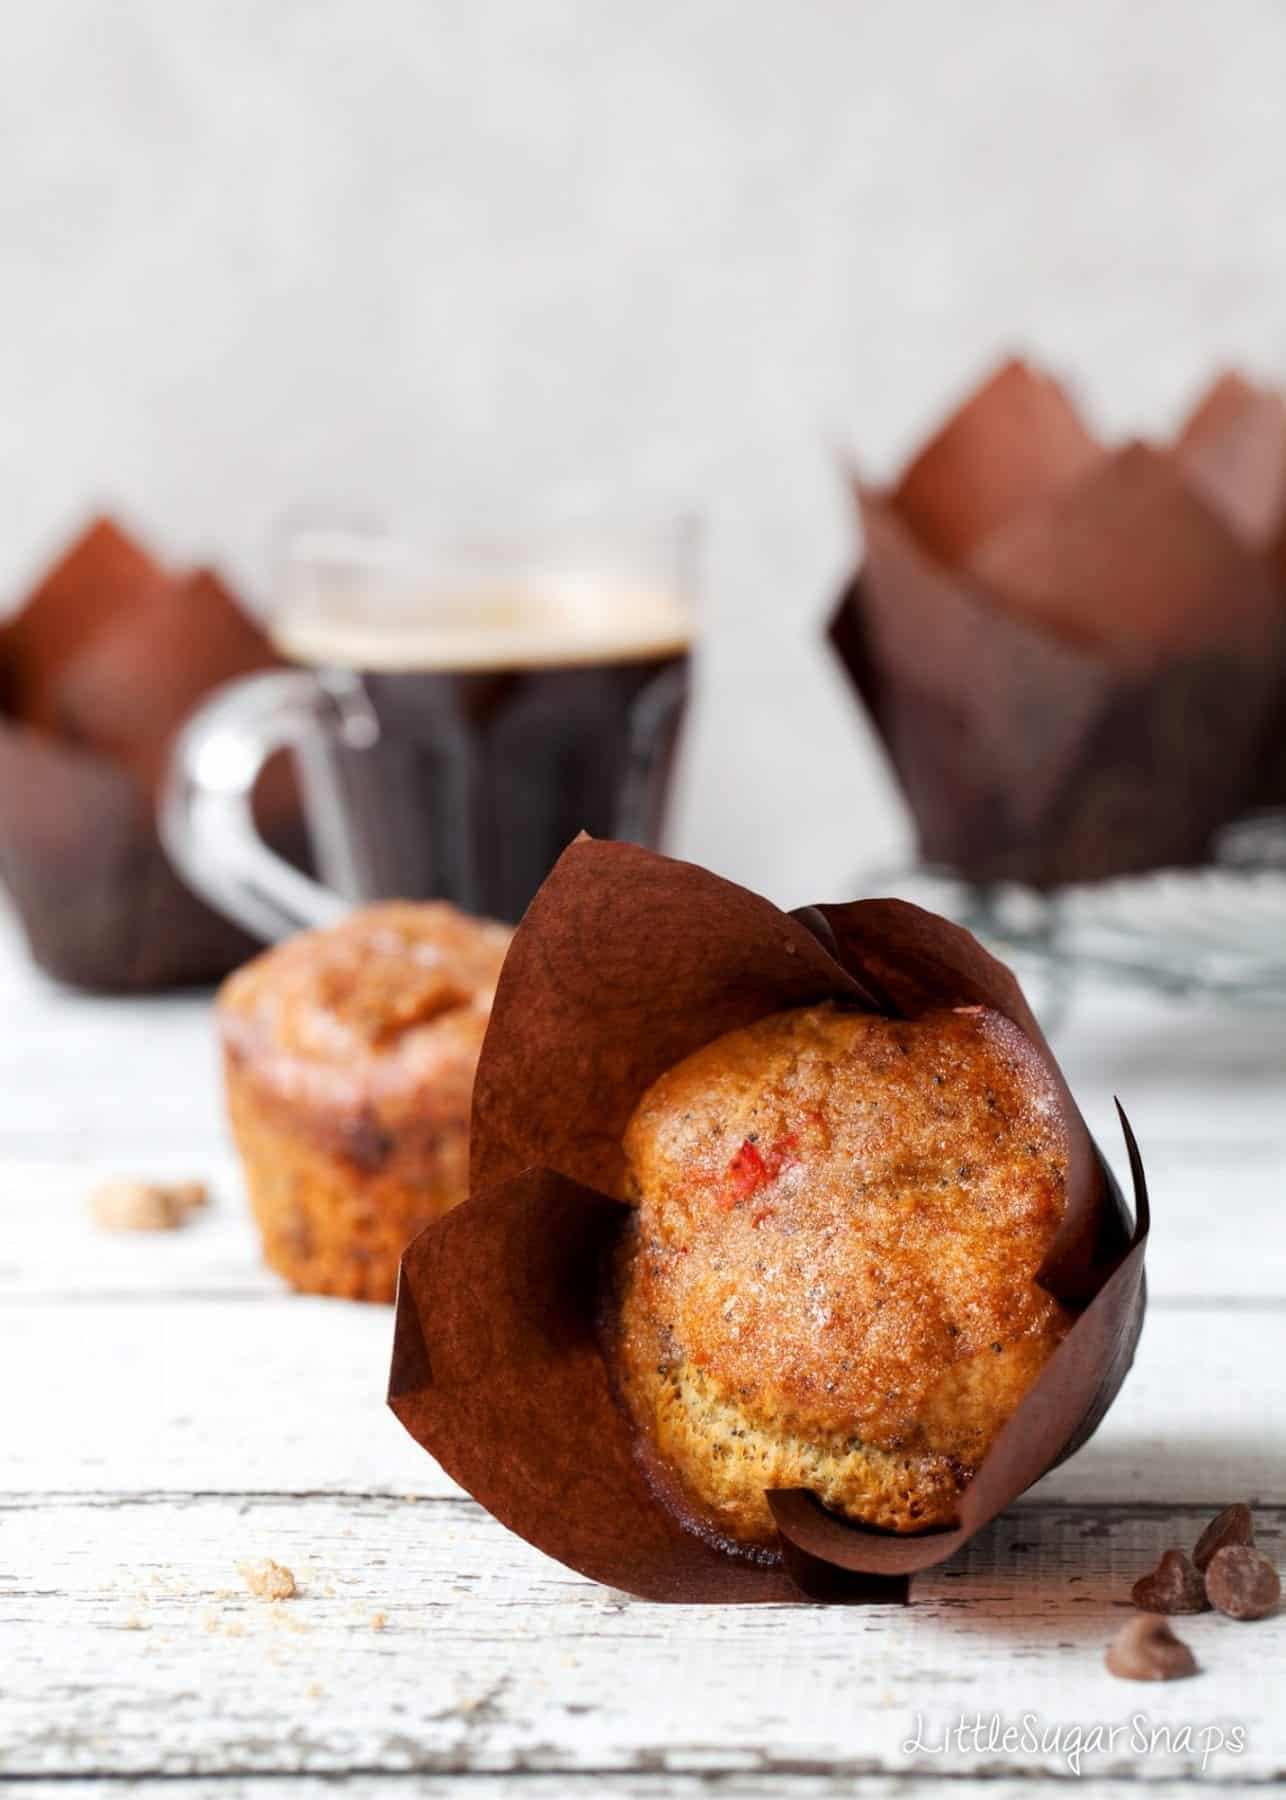 An Orange Drizzle Muffin on its side - still in a brown wrapper